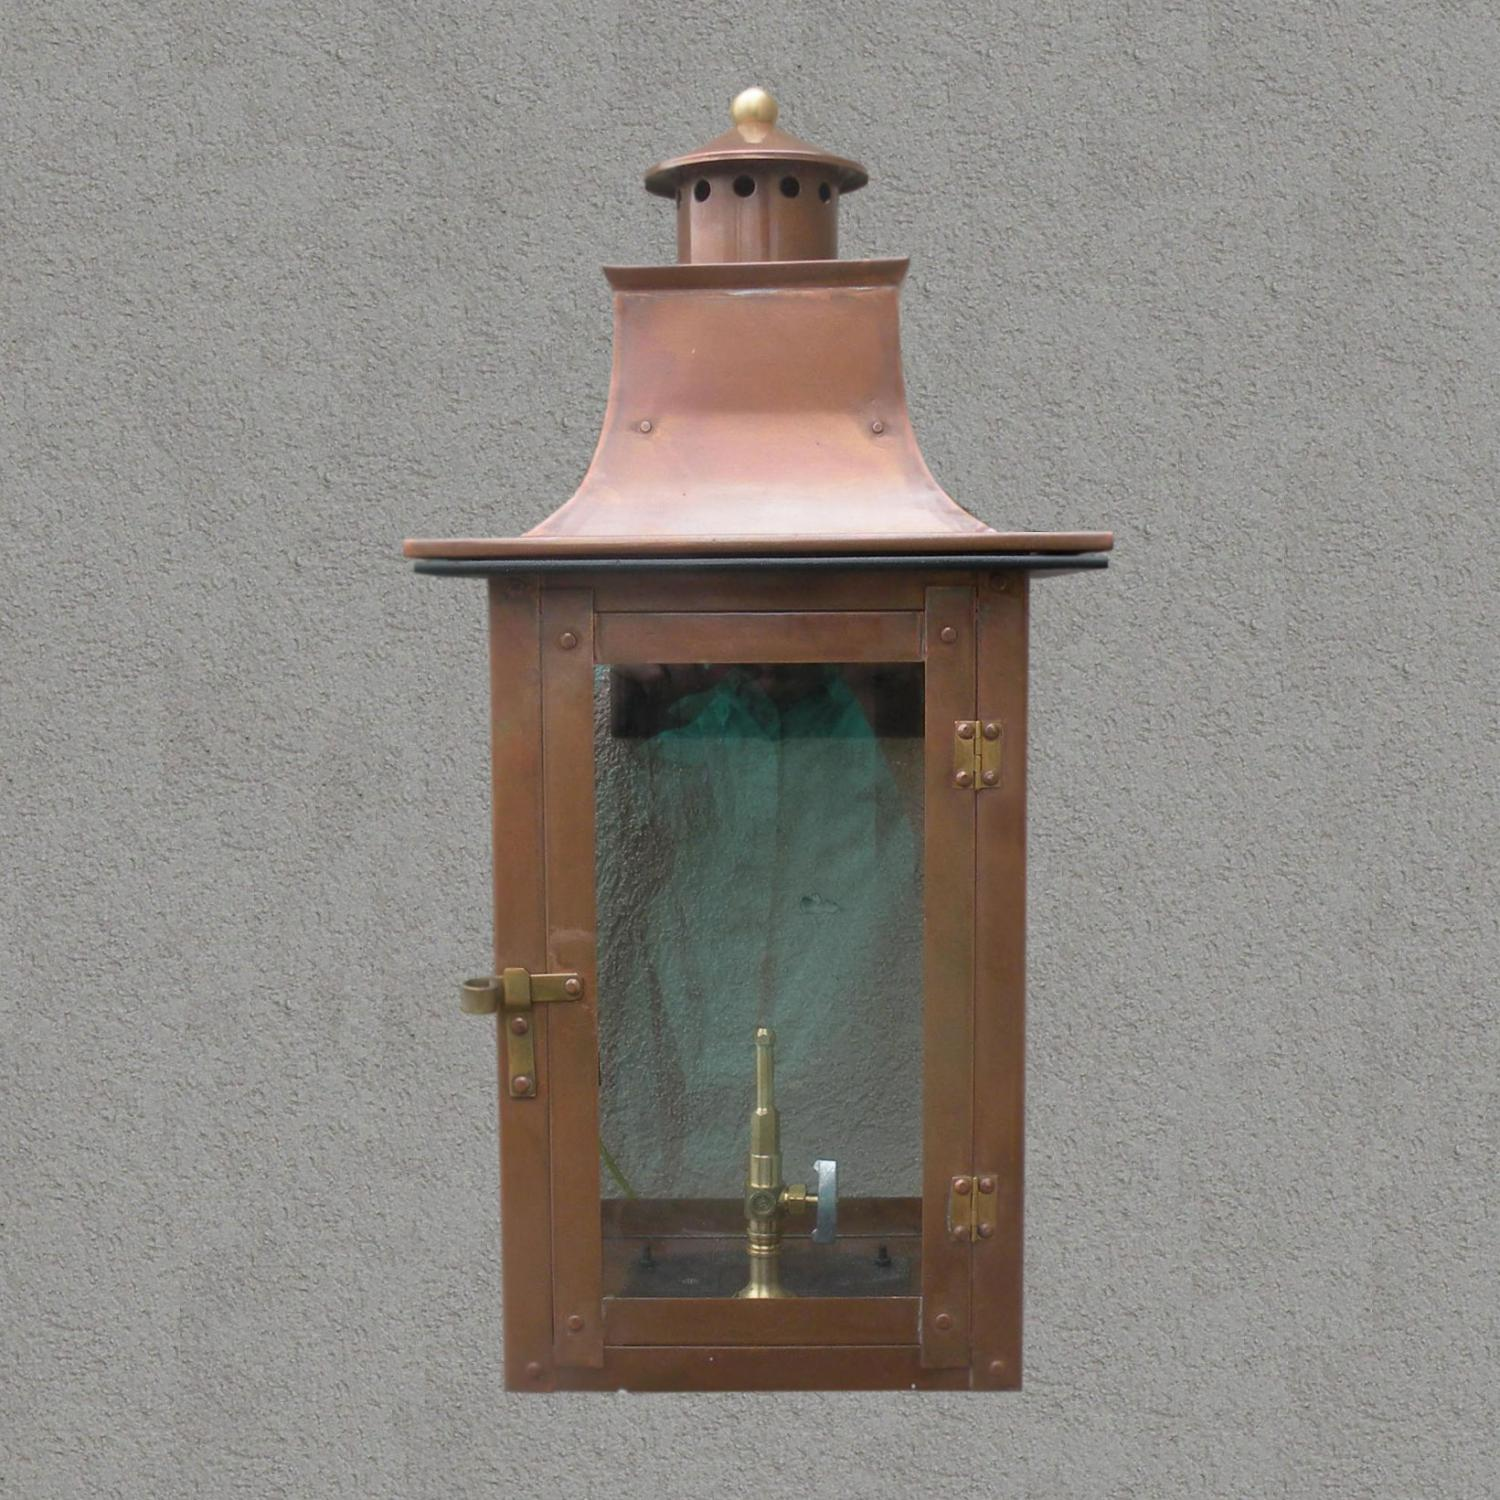 Regency Gl21 Faye Rue Small Propane Gas Light With Open Flame Burner And Manual Ignition On Wall Scroll Mount at Sears.com